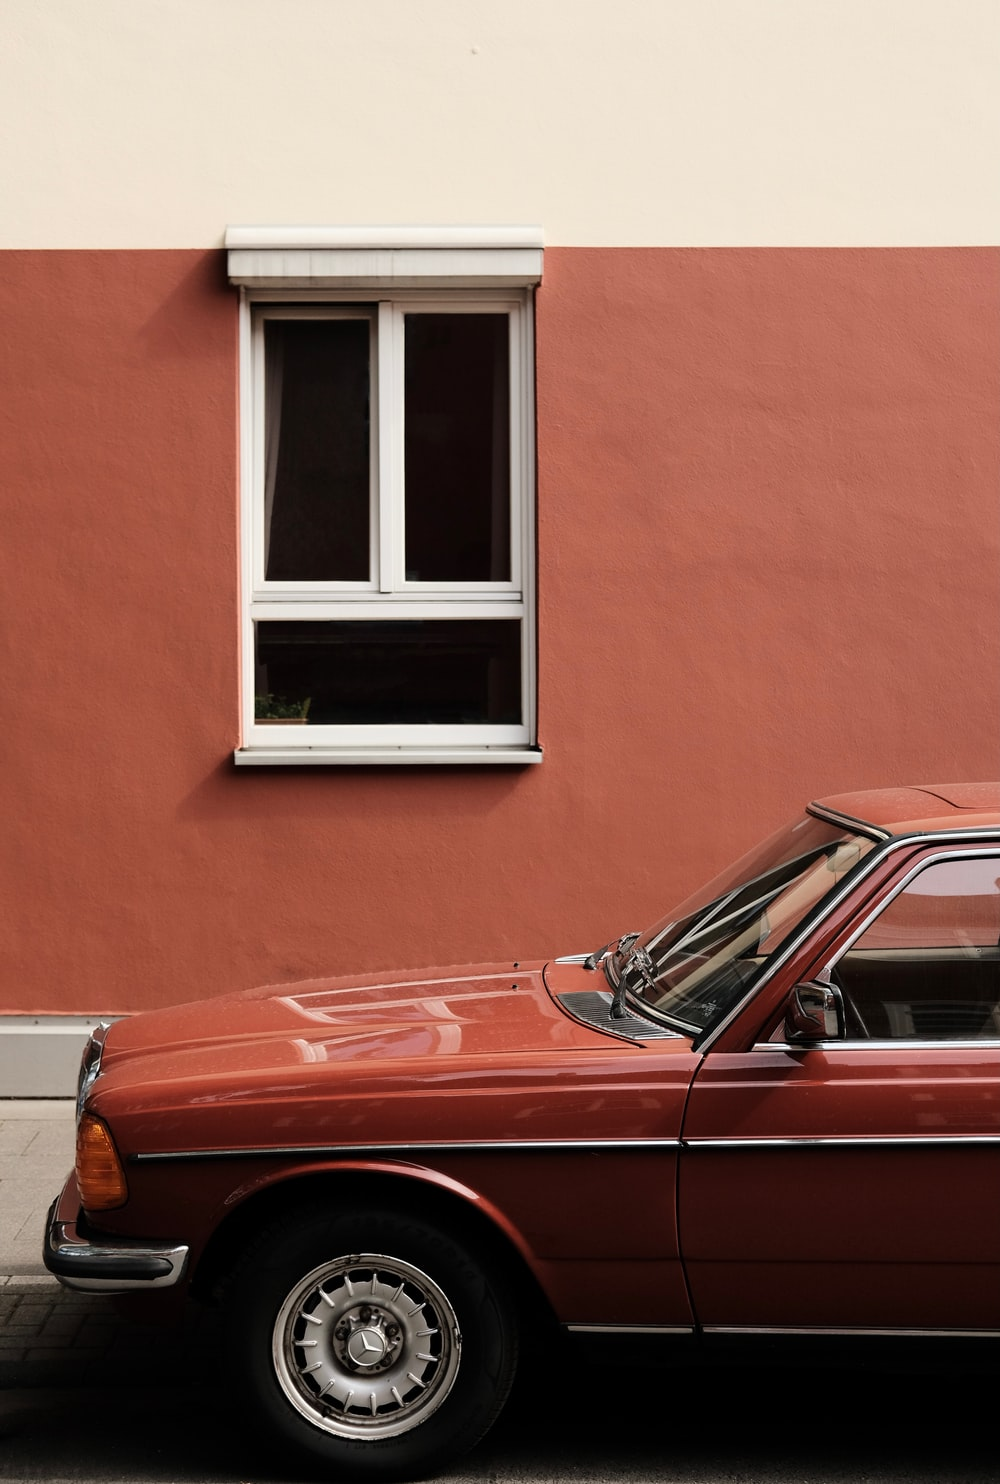 red car parked beside brown concrete building